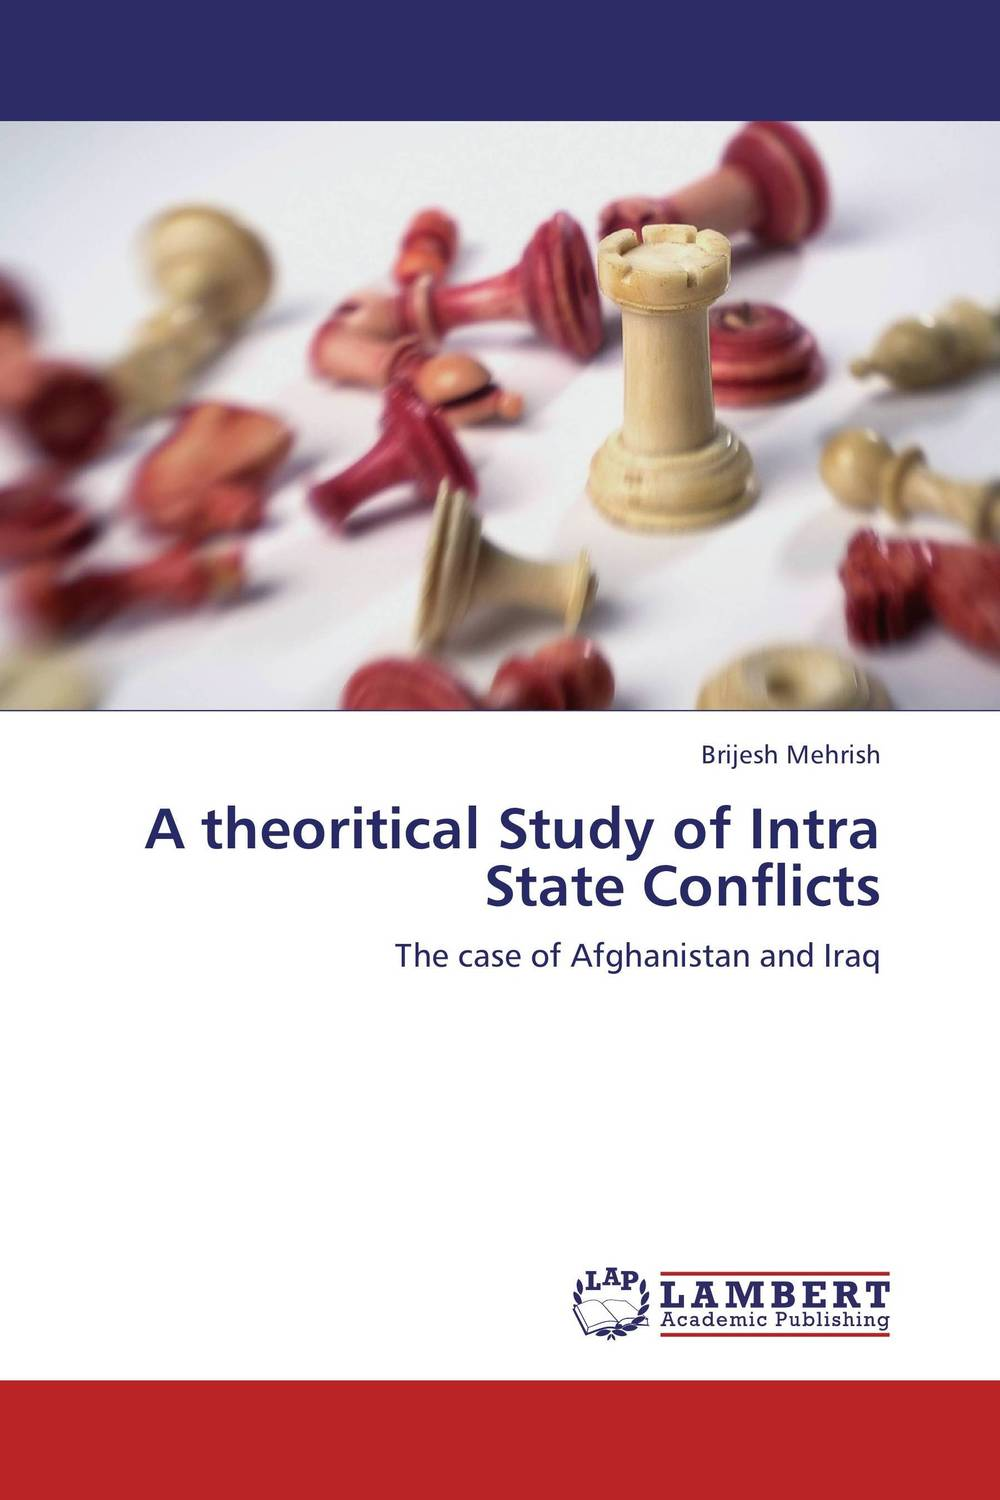 A theoritical Study of Intra State Conflicts victorian america and the civil war